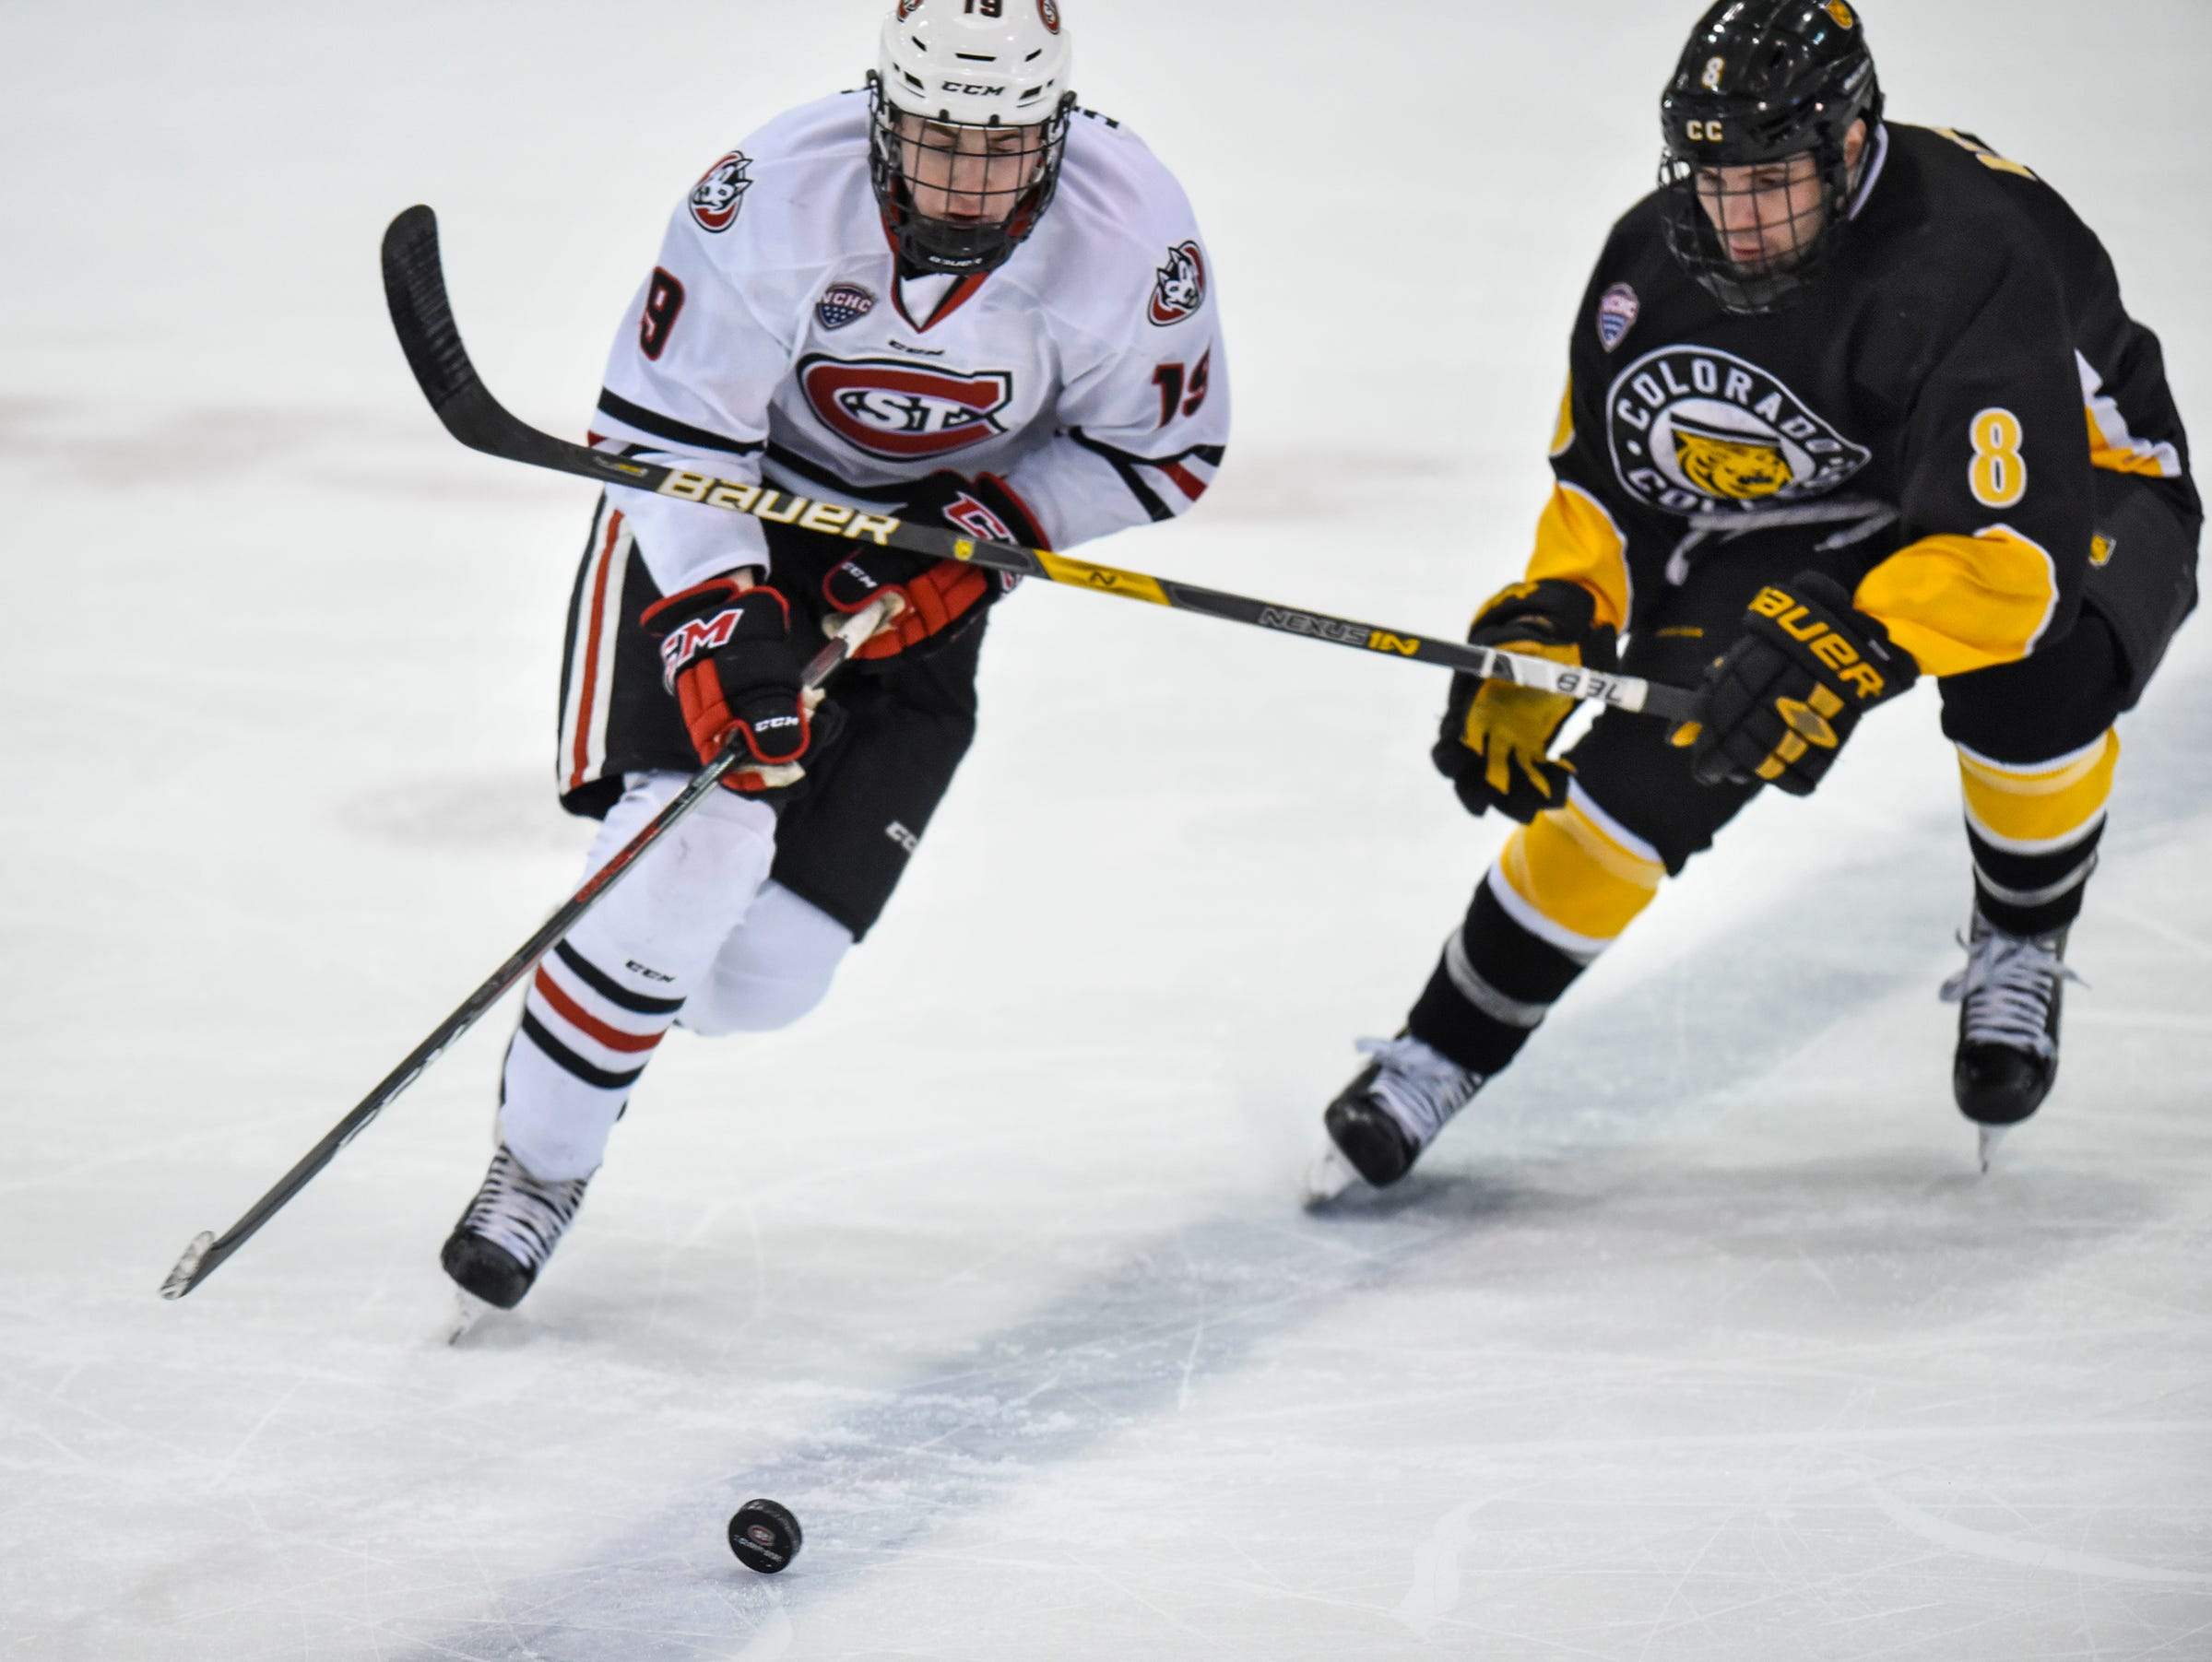 St. Cloud State's Sam Hentges tries to get past Zach Berzolla of Colorado College during the first period of the Saturday, Feb. 9, game at the Herb Brooks National Hockey Center in St. Cloud.